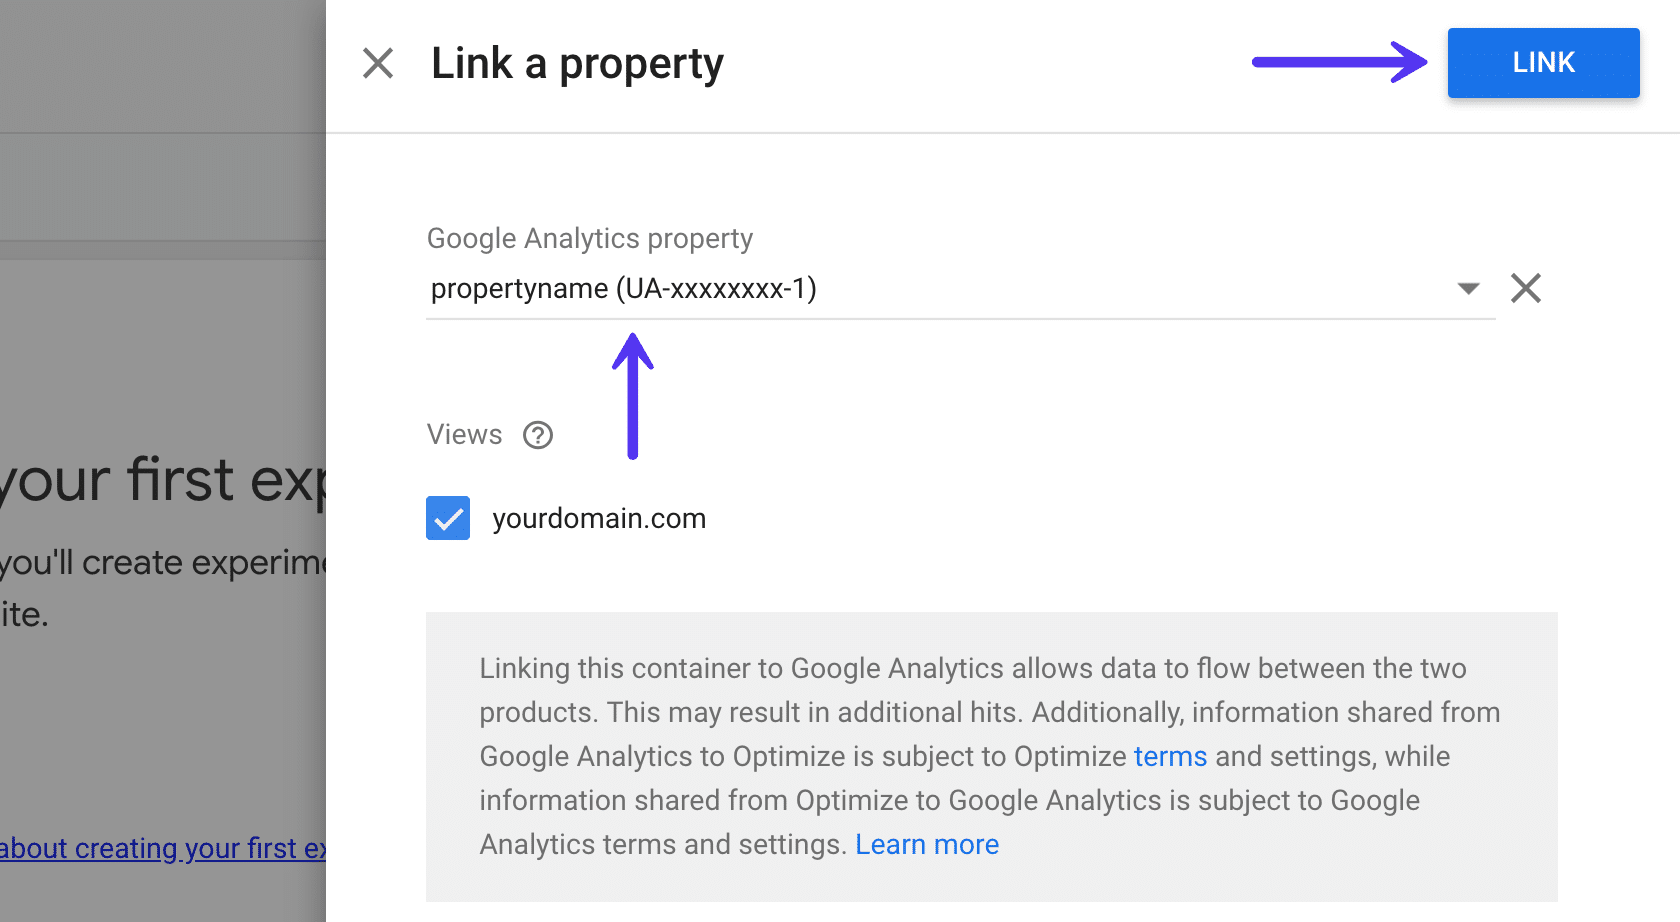 Link a property in Google Optimize